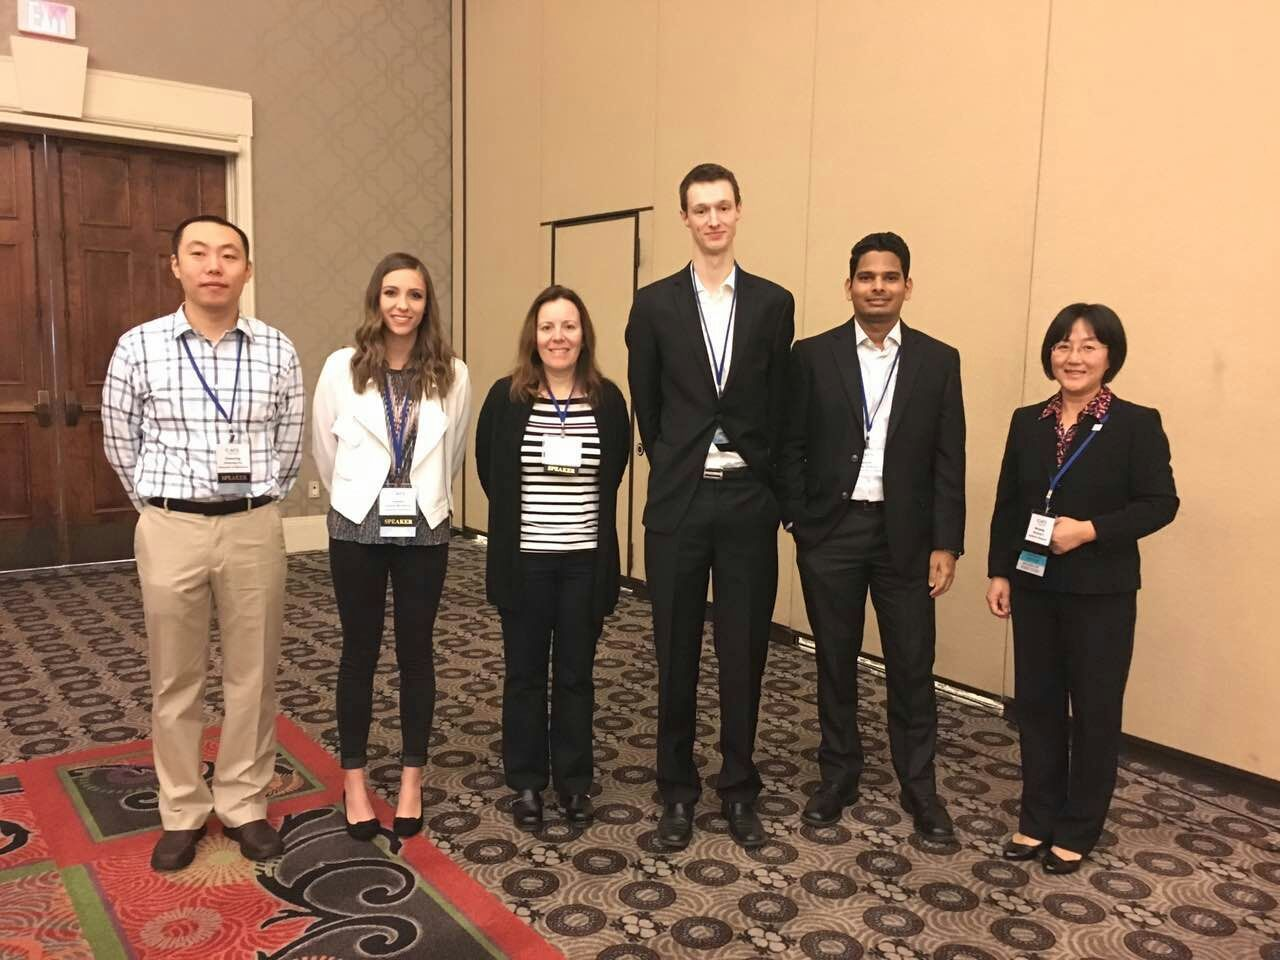 Best poster winners at at the American Filtration and Seperations Society 2017 Annual Conference